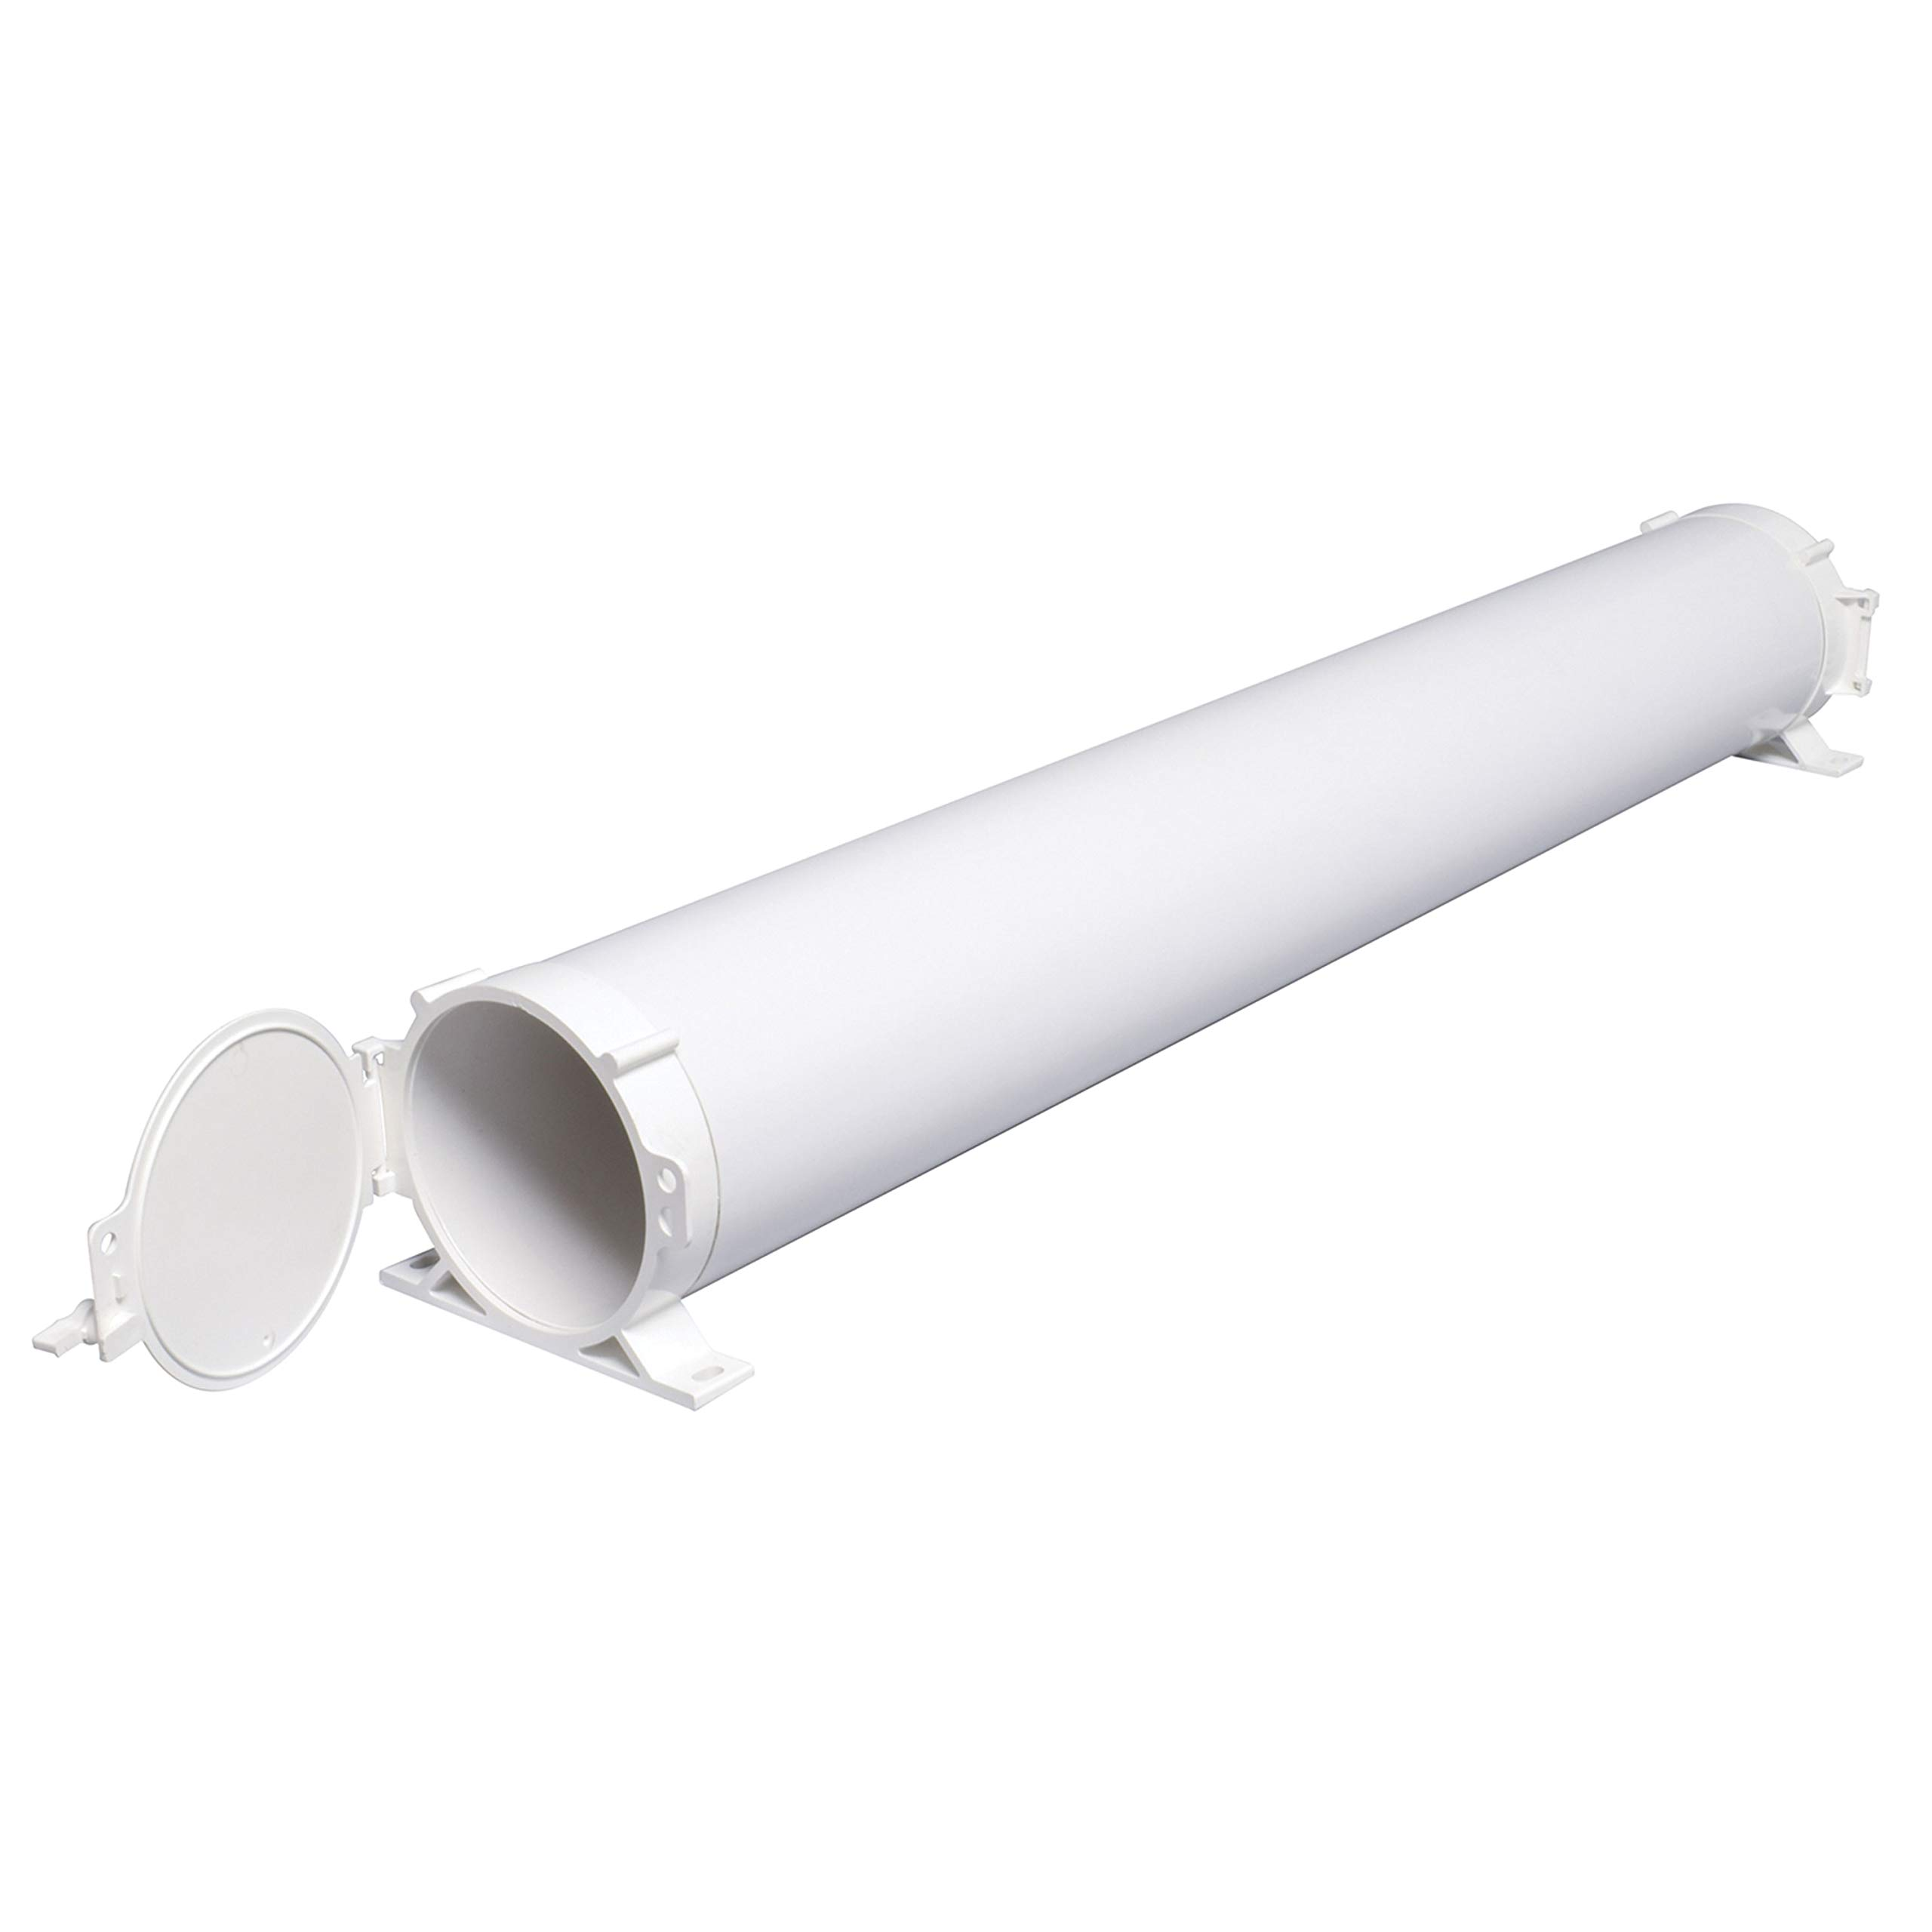 Valterra 50'' - 94'' A04-5094 Adjustable EZ Hose Carrier-50, White by Valterra